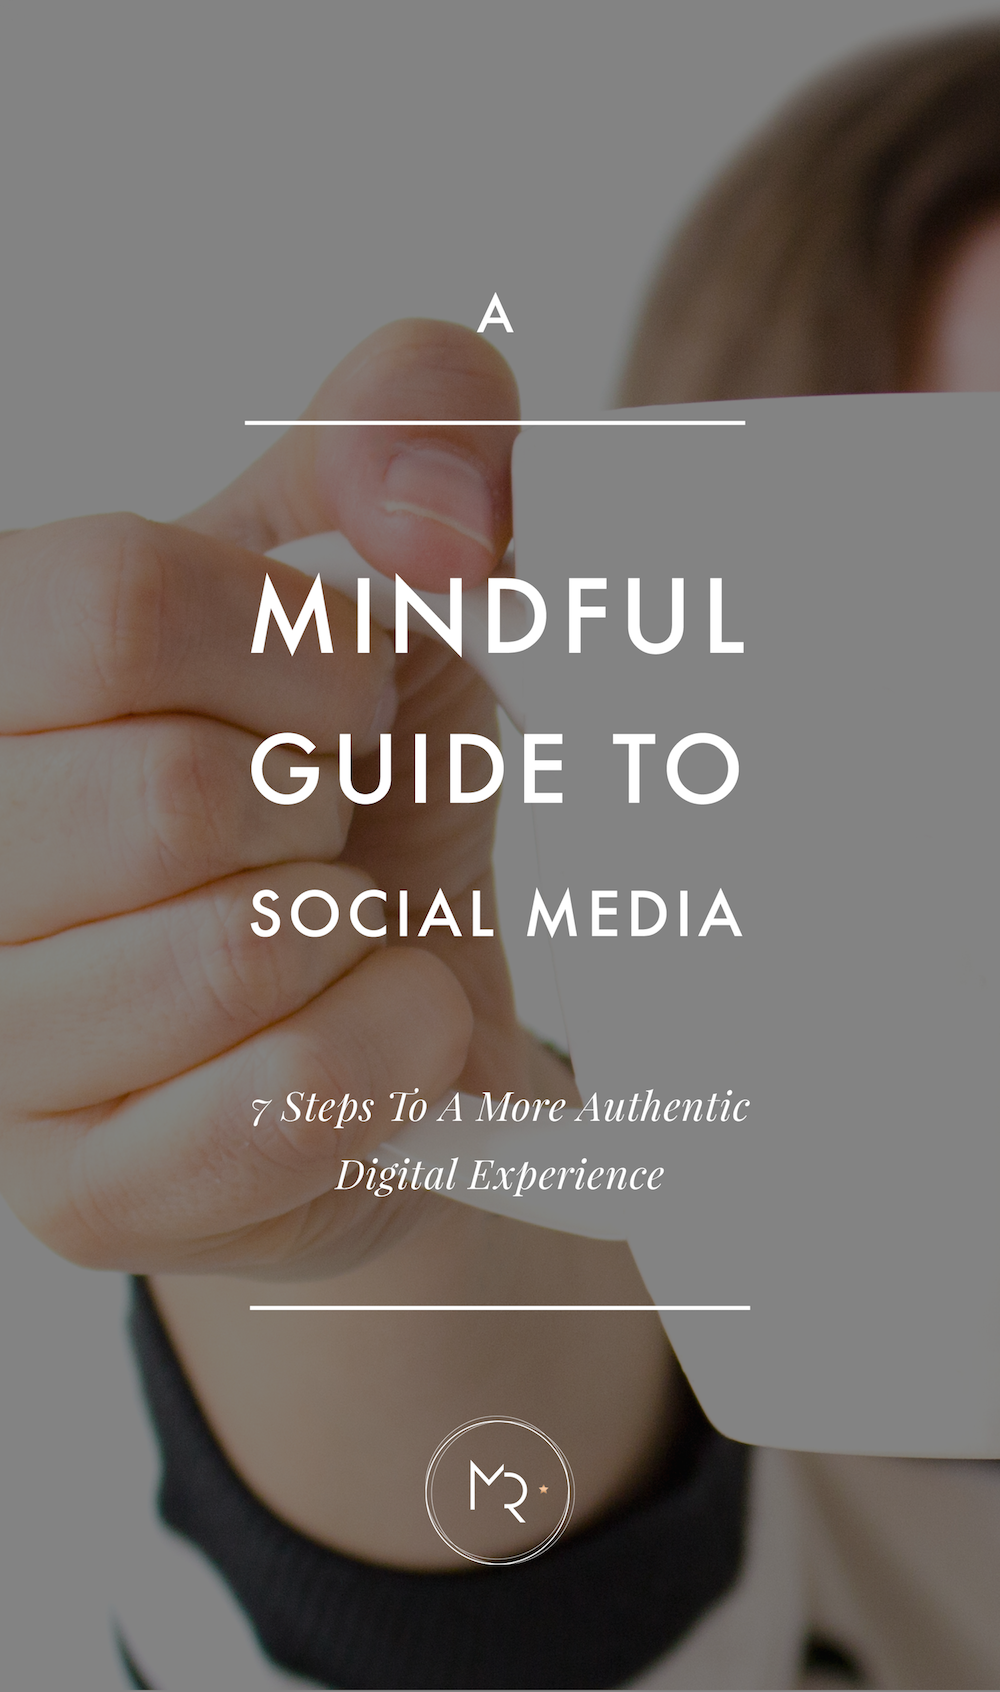 A Mindful Guide to Social Media 7 Steps to a more Authentic Social Media Experience